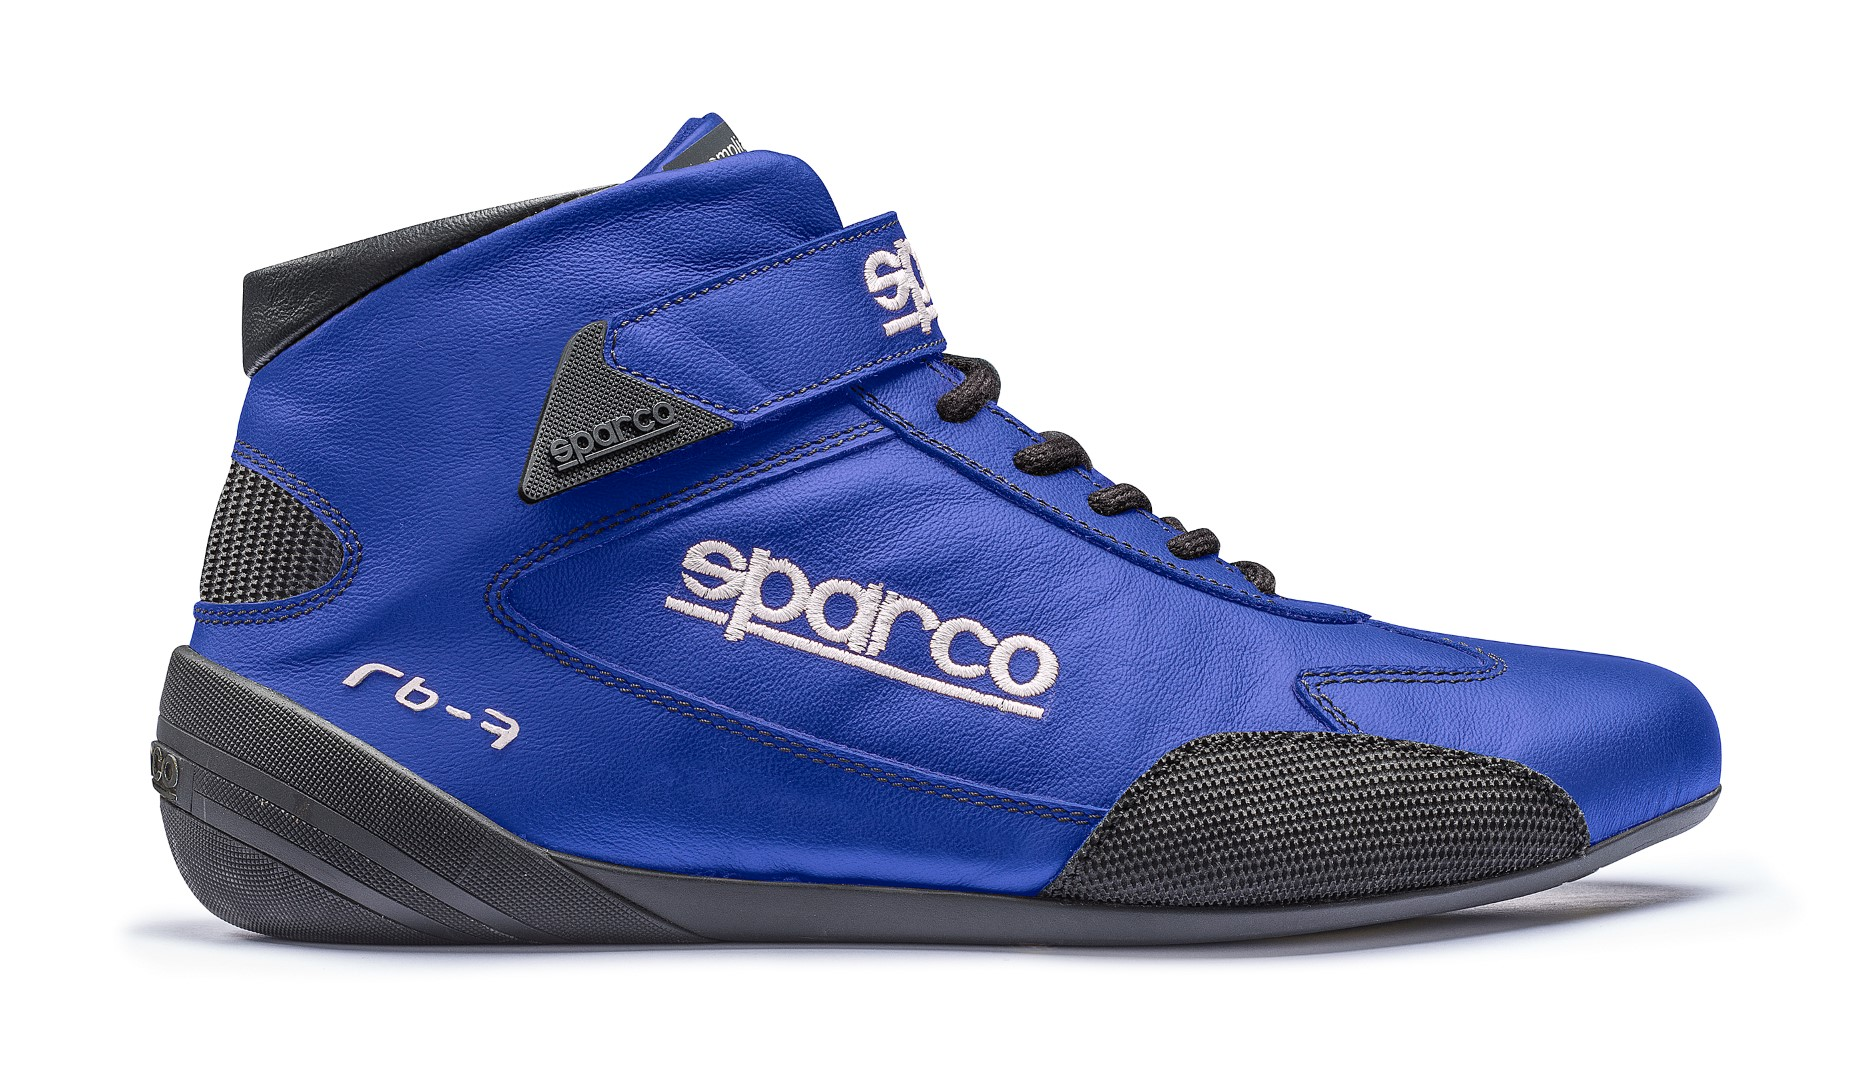 Sparco Blue Cross RB-7 Driving Shoes EU 36 - 00122436AZ